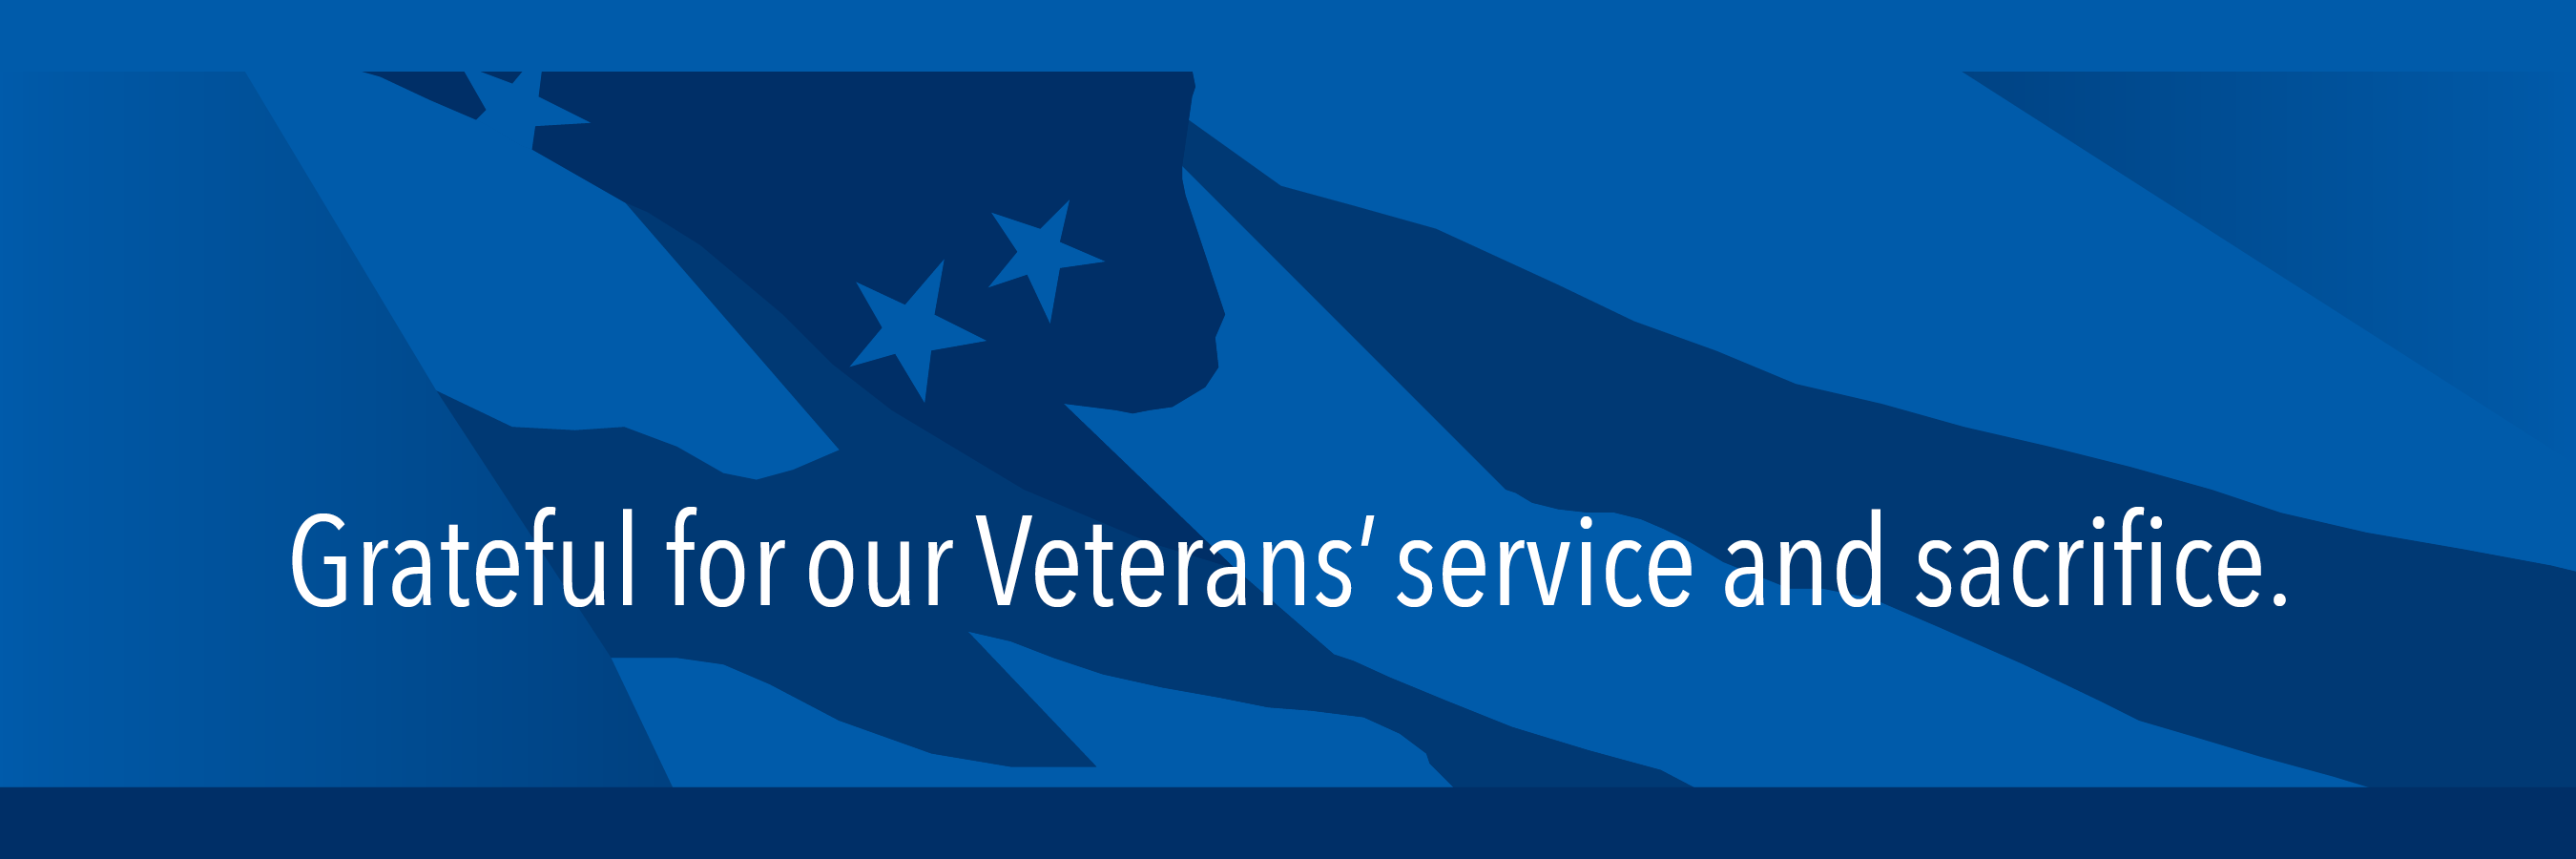 grateful for our veterans' service and sacrifice